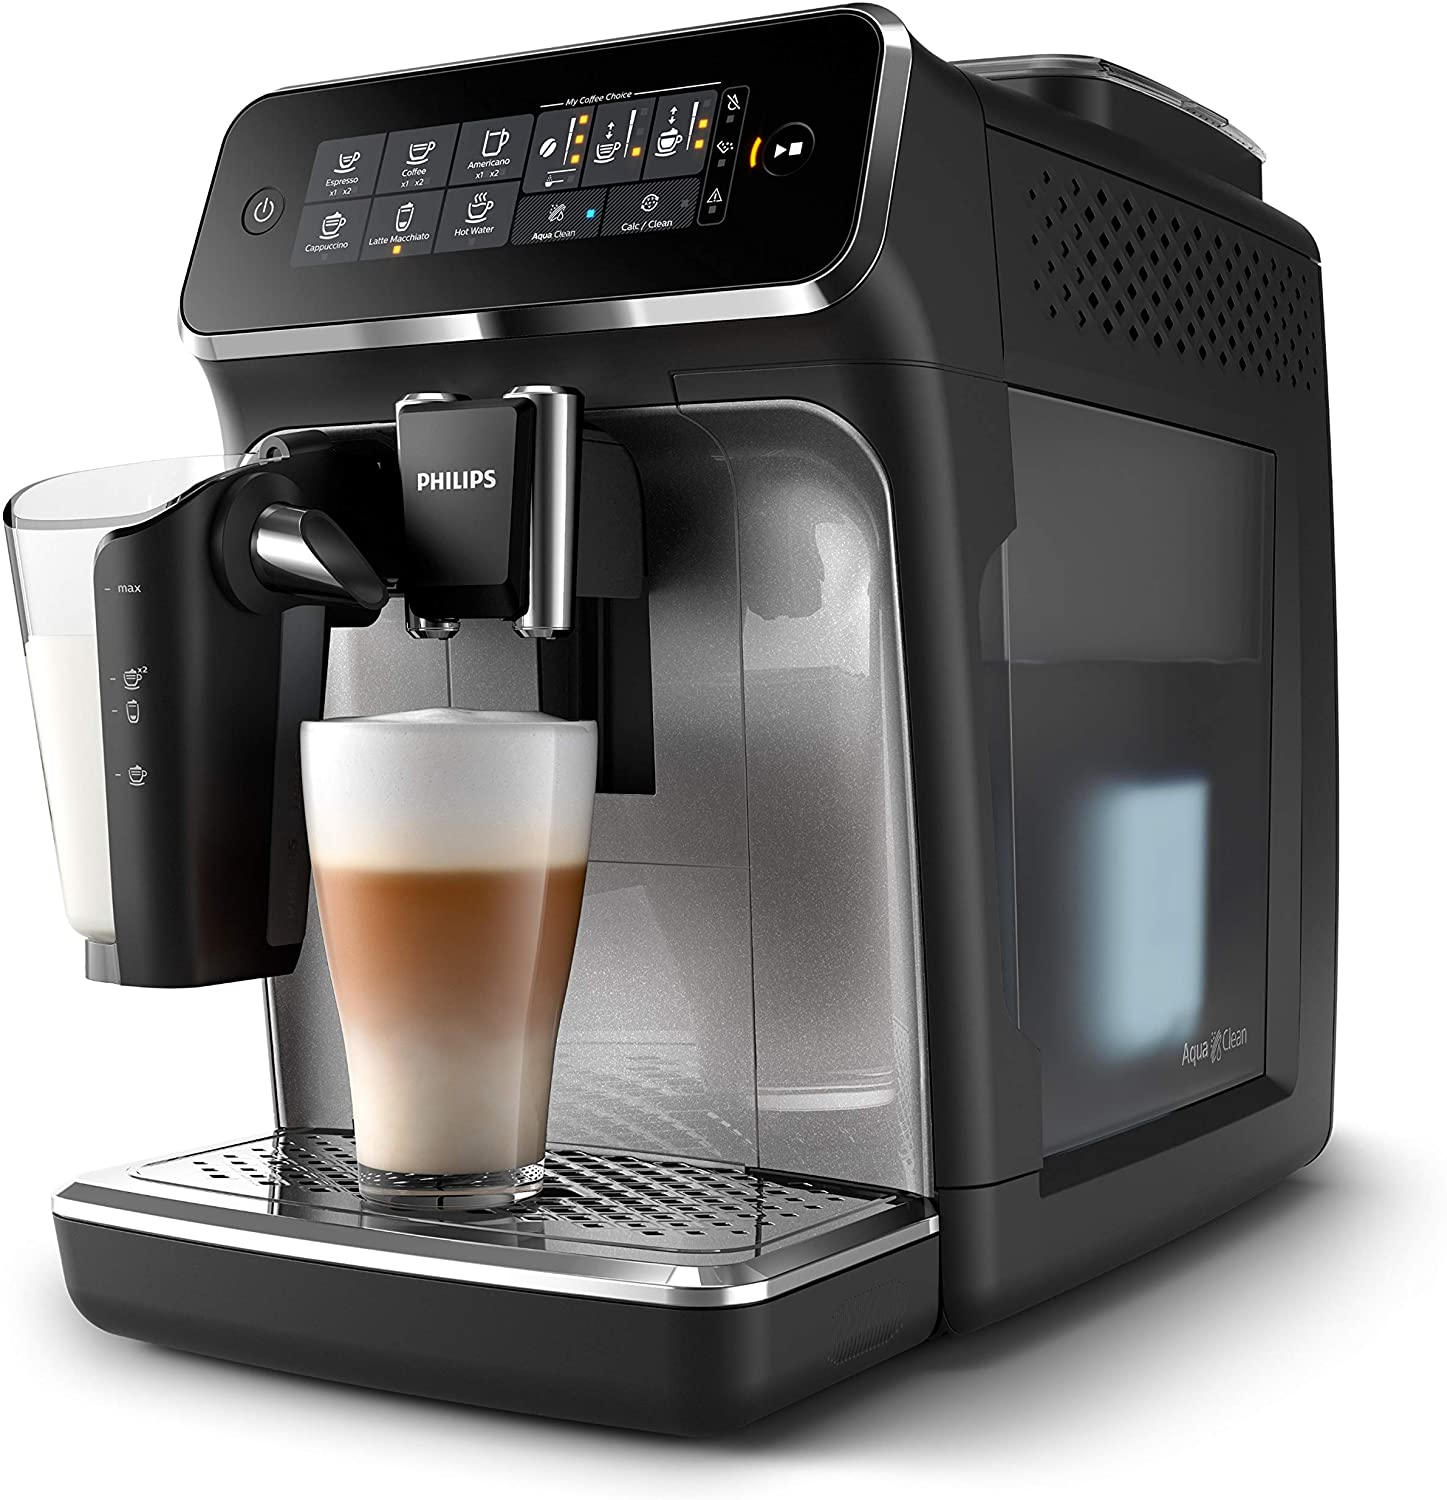 cafetera-ep3246-70-serie-3200-phillips.jpg